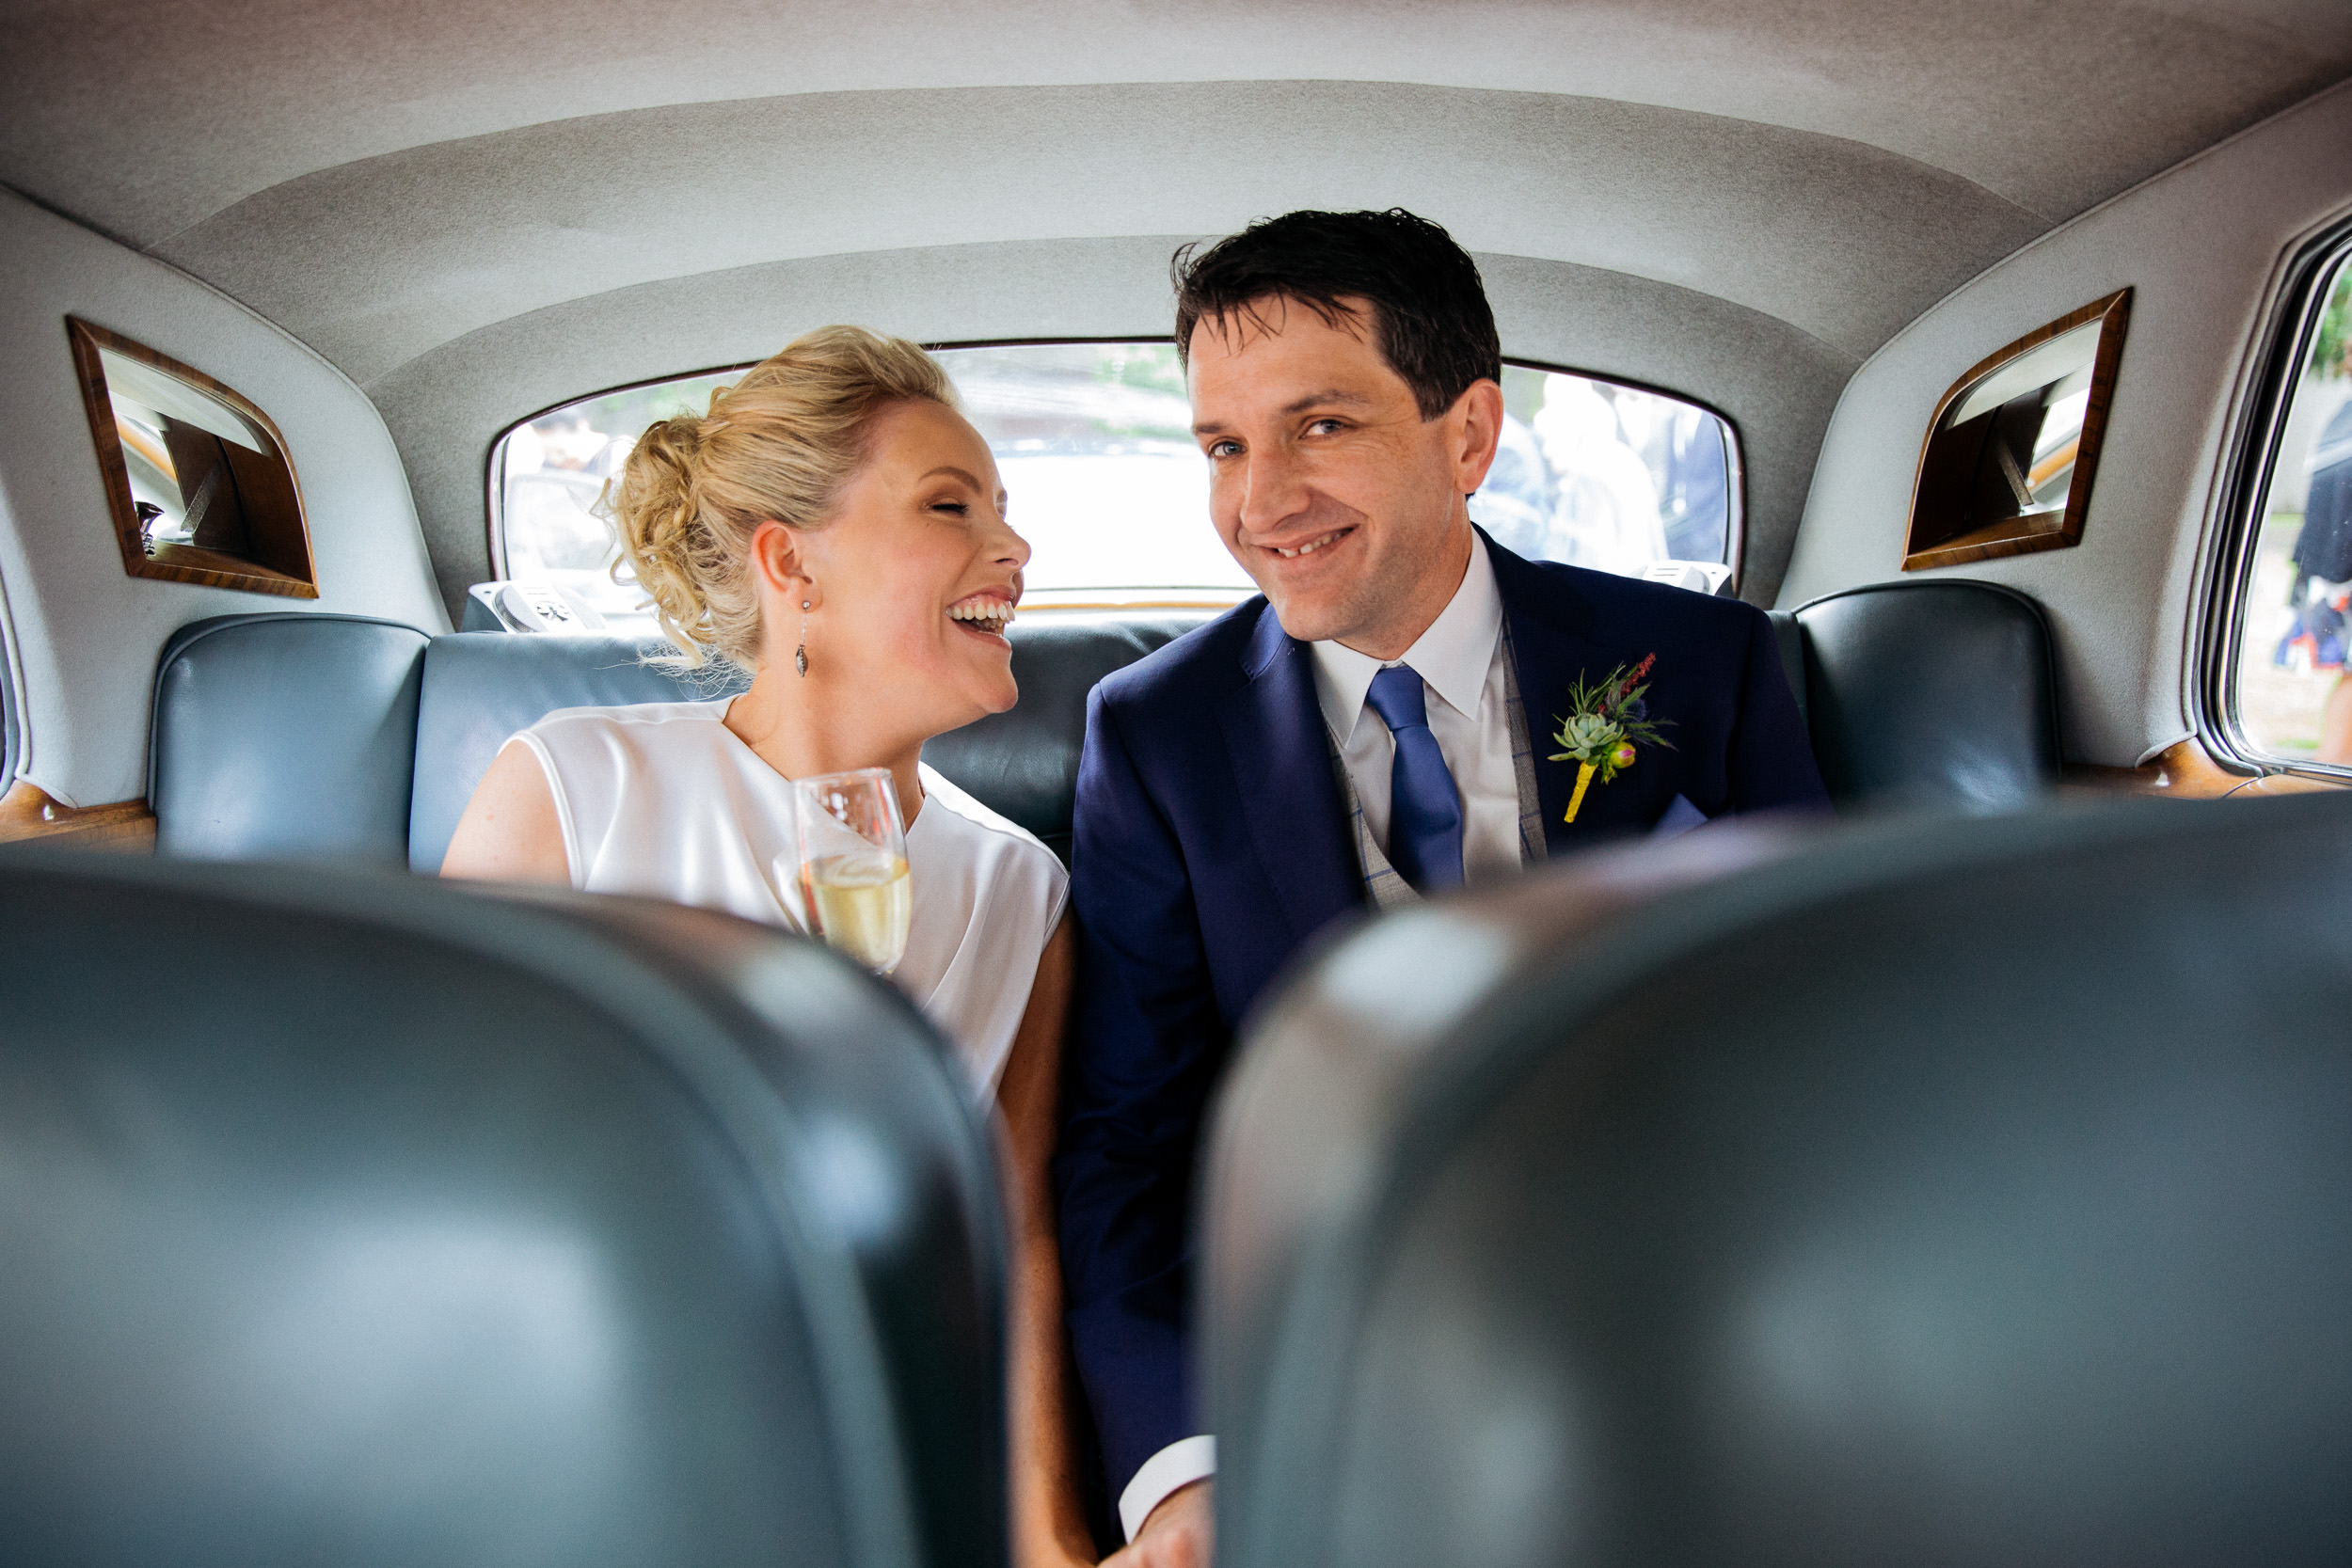 clairebyrnephotography-fun-wedding-photographer-ireland-creative-174.jpg